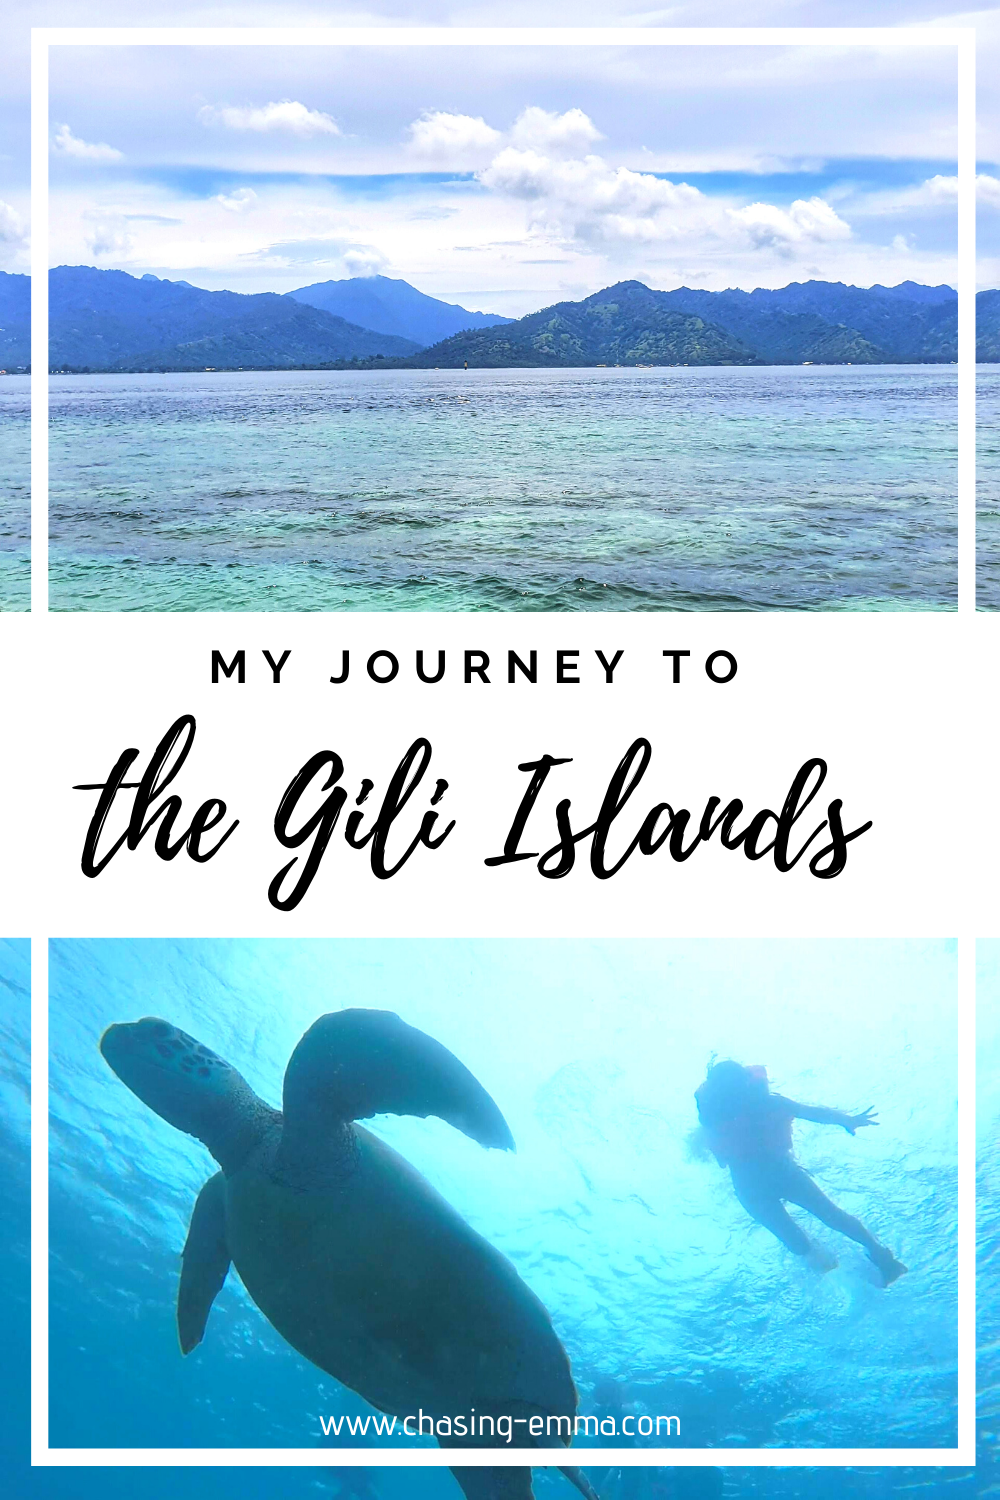 My Journey to the Gili Islands Chasing Emma